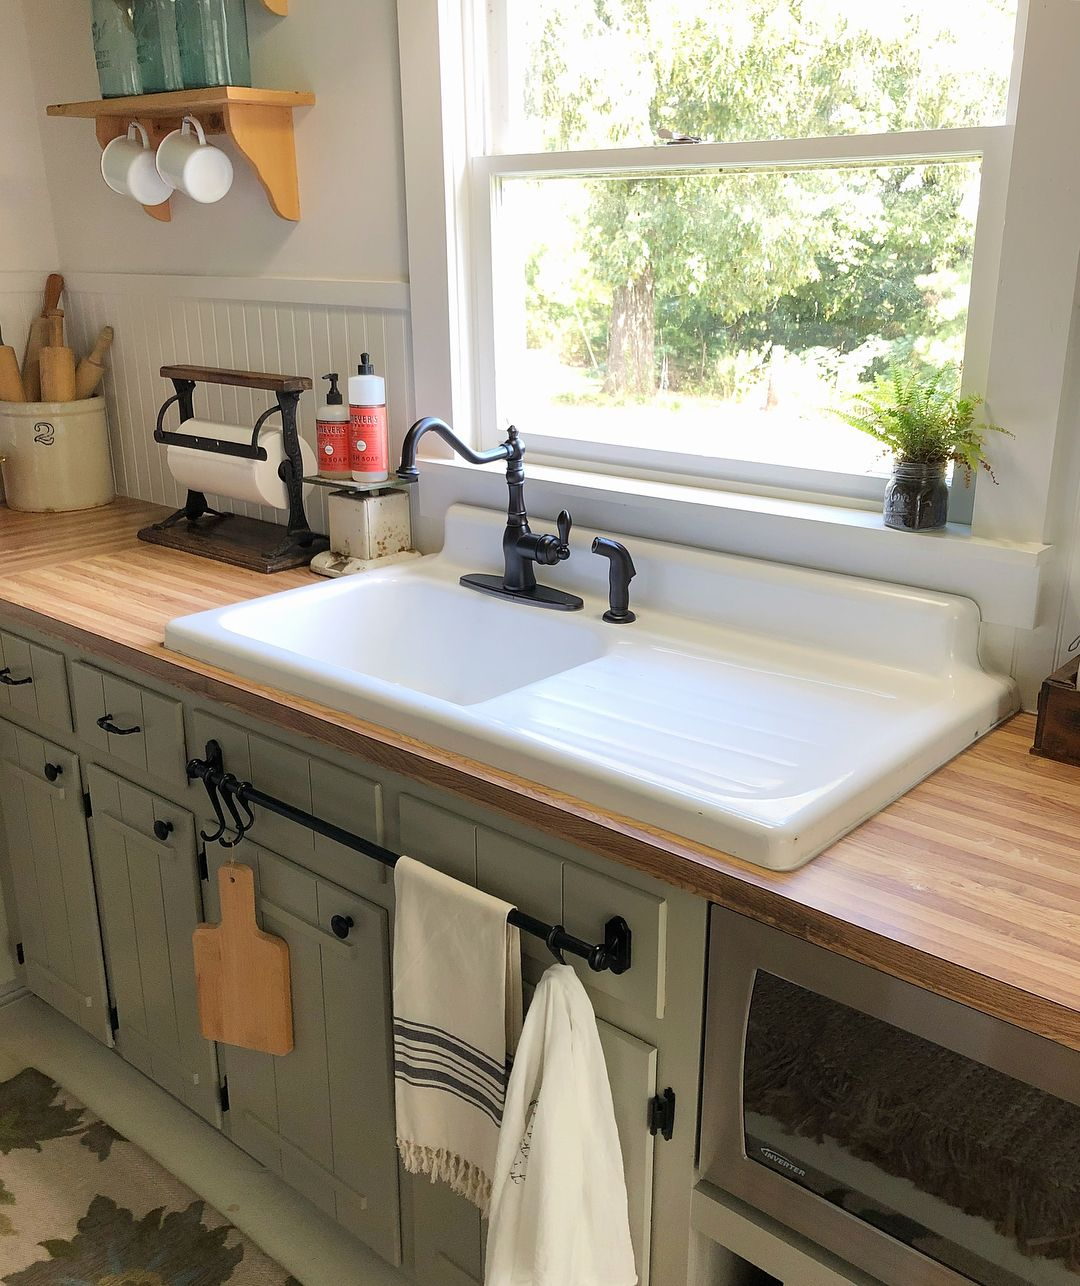 Download Wallpaper How To Use A Drainboard Sink